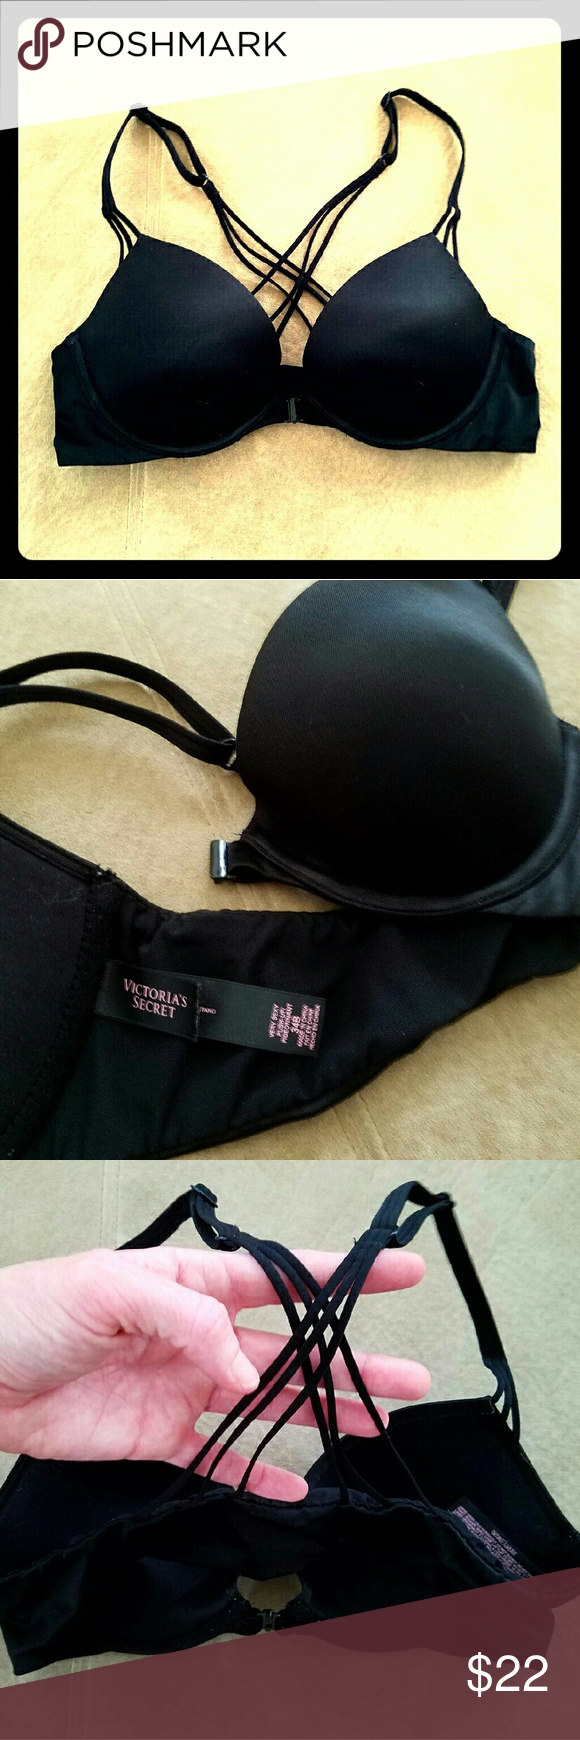 Victoria's Secret Very Sexy Black Strappy Bra Super sexy but extremely functional VS bra.  Front Clasp, plunge push up, strappy (3 straps) cross back, solid black bra.  Part of the Very Sexy line. Size 34b.  Only worn 3-4 times. Enjoy! Victoria's Secret Intimates & Sleepwear Bras